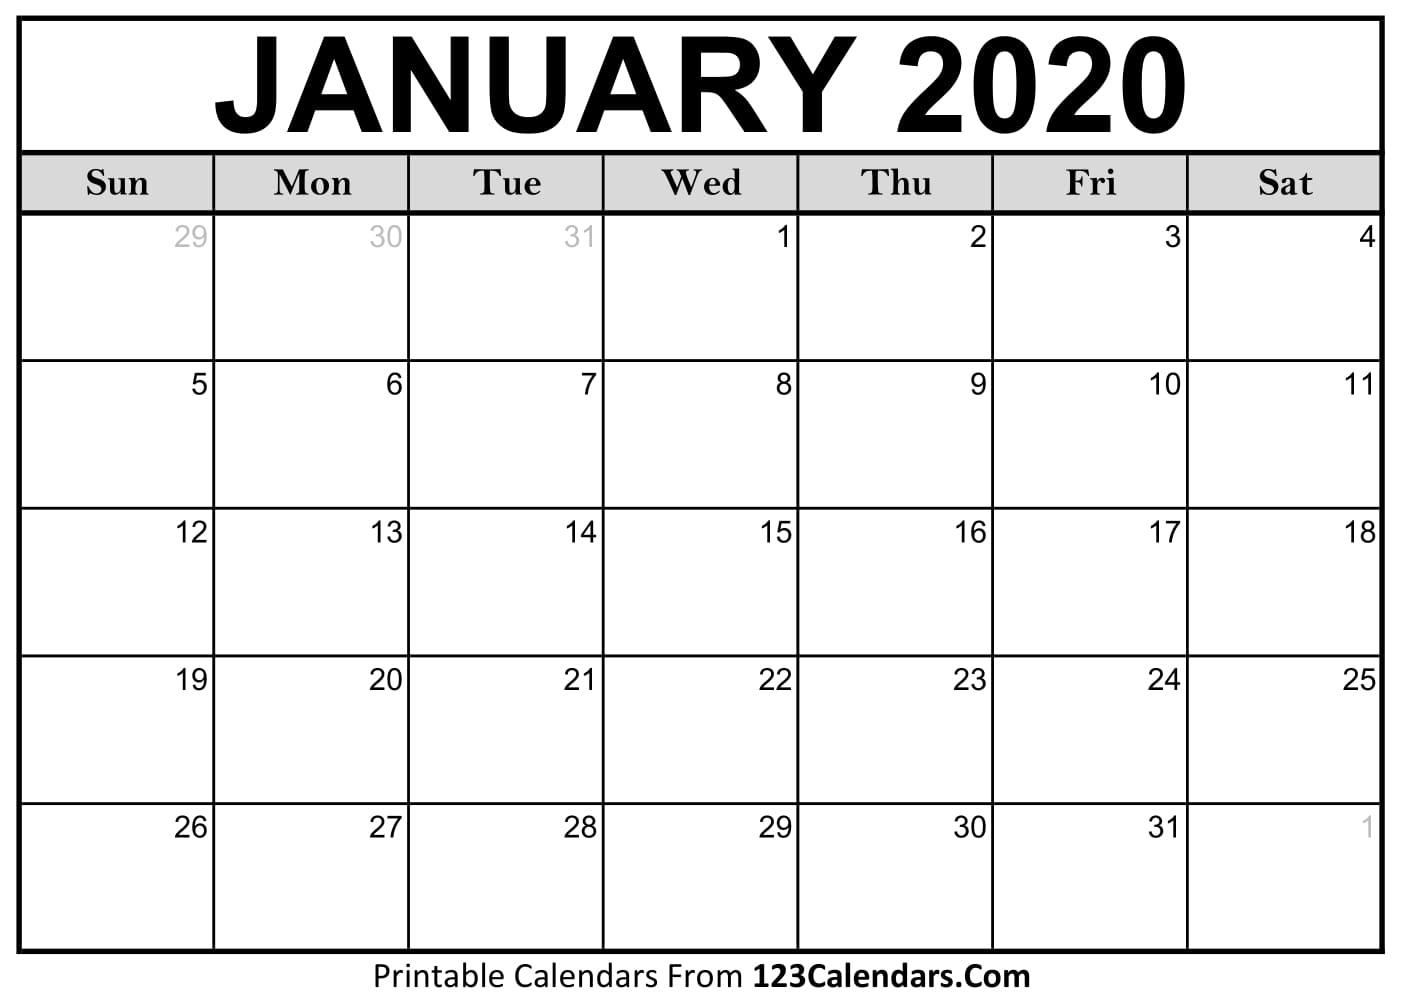 photograph relating to January Printable Calender referred to as January 2020 Printable Calendar